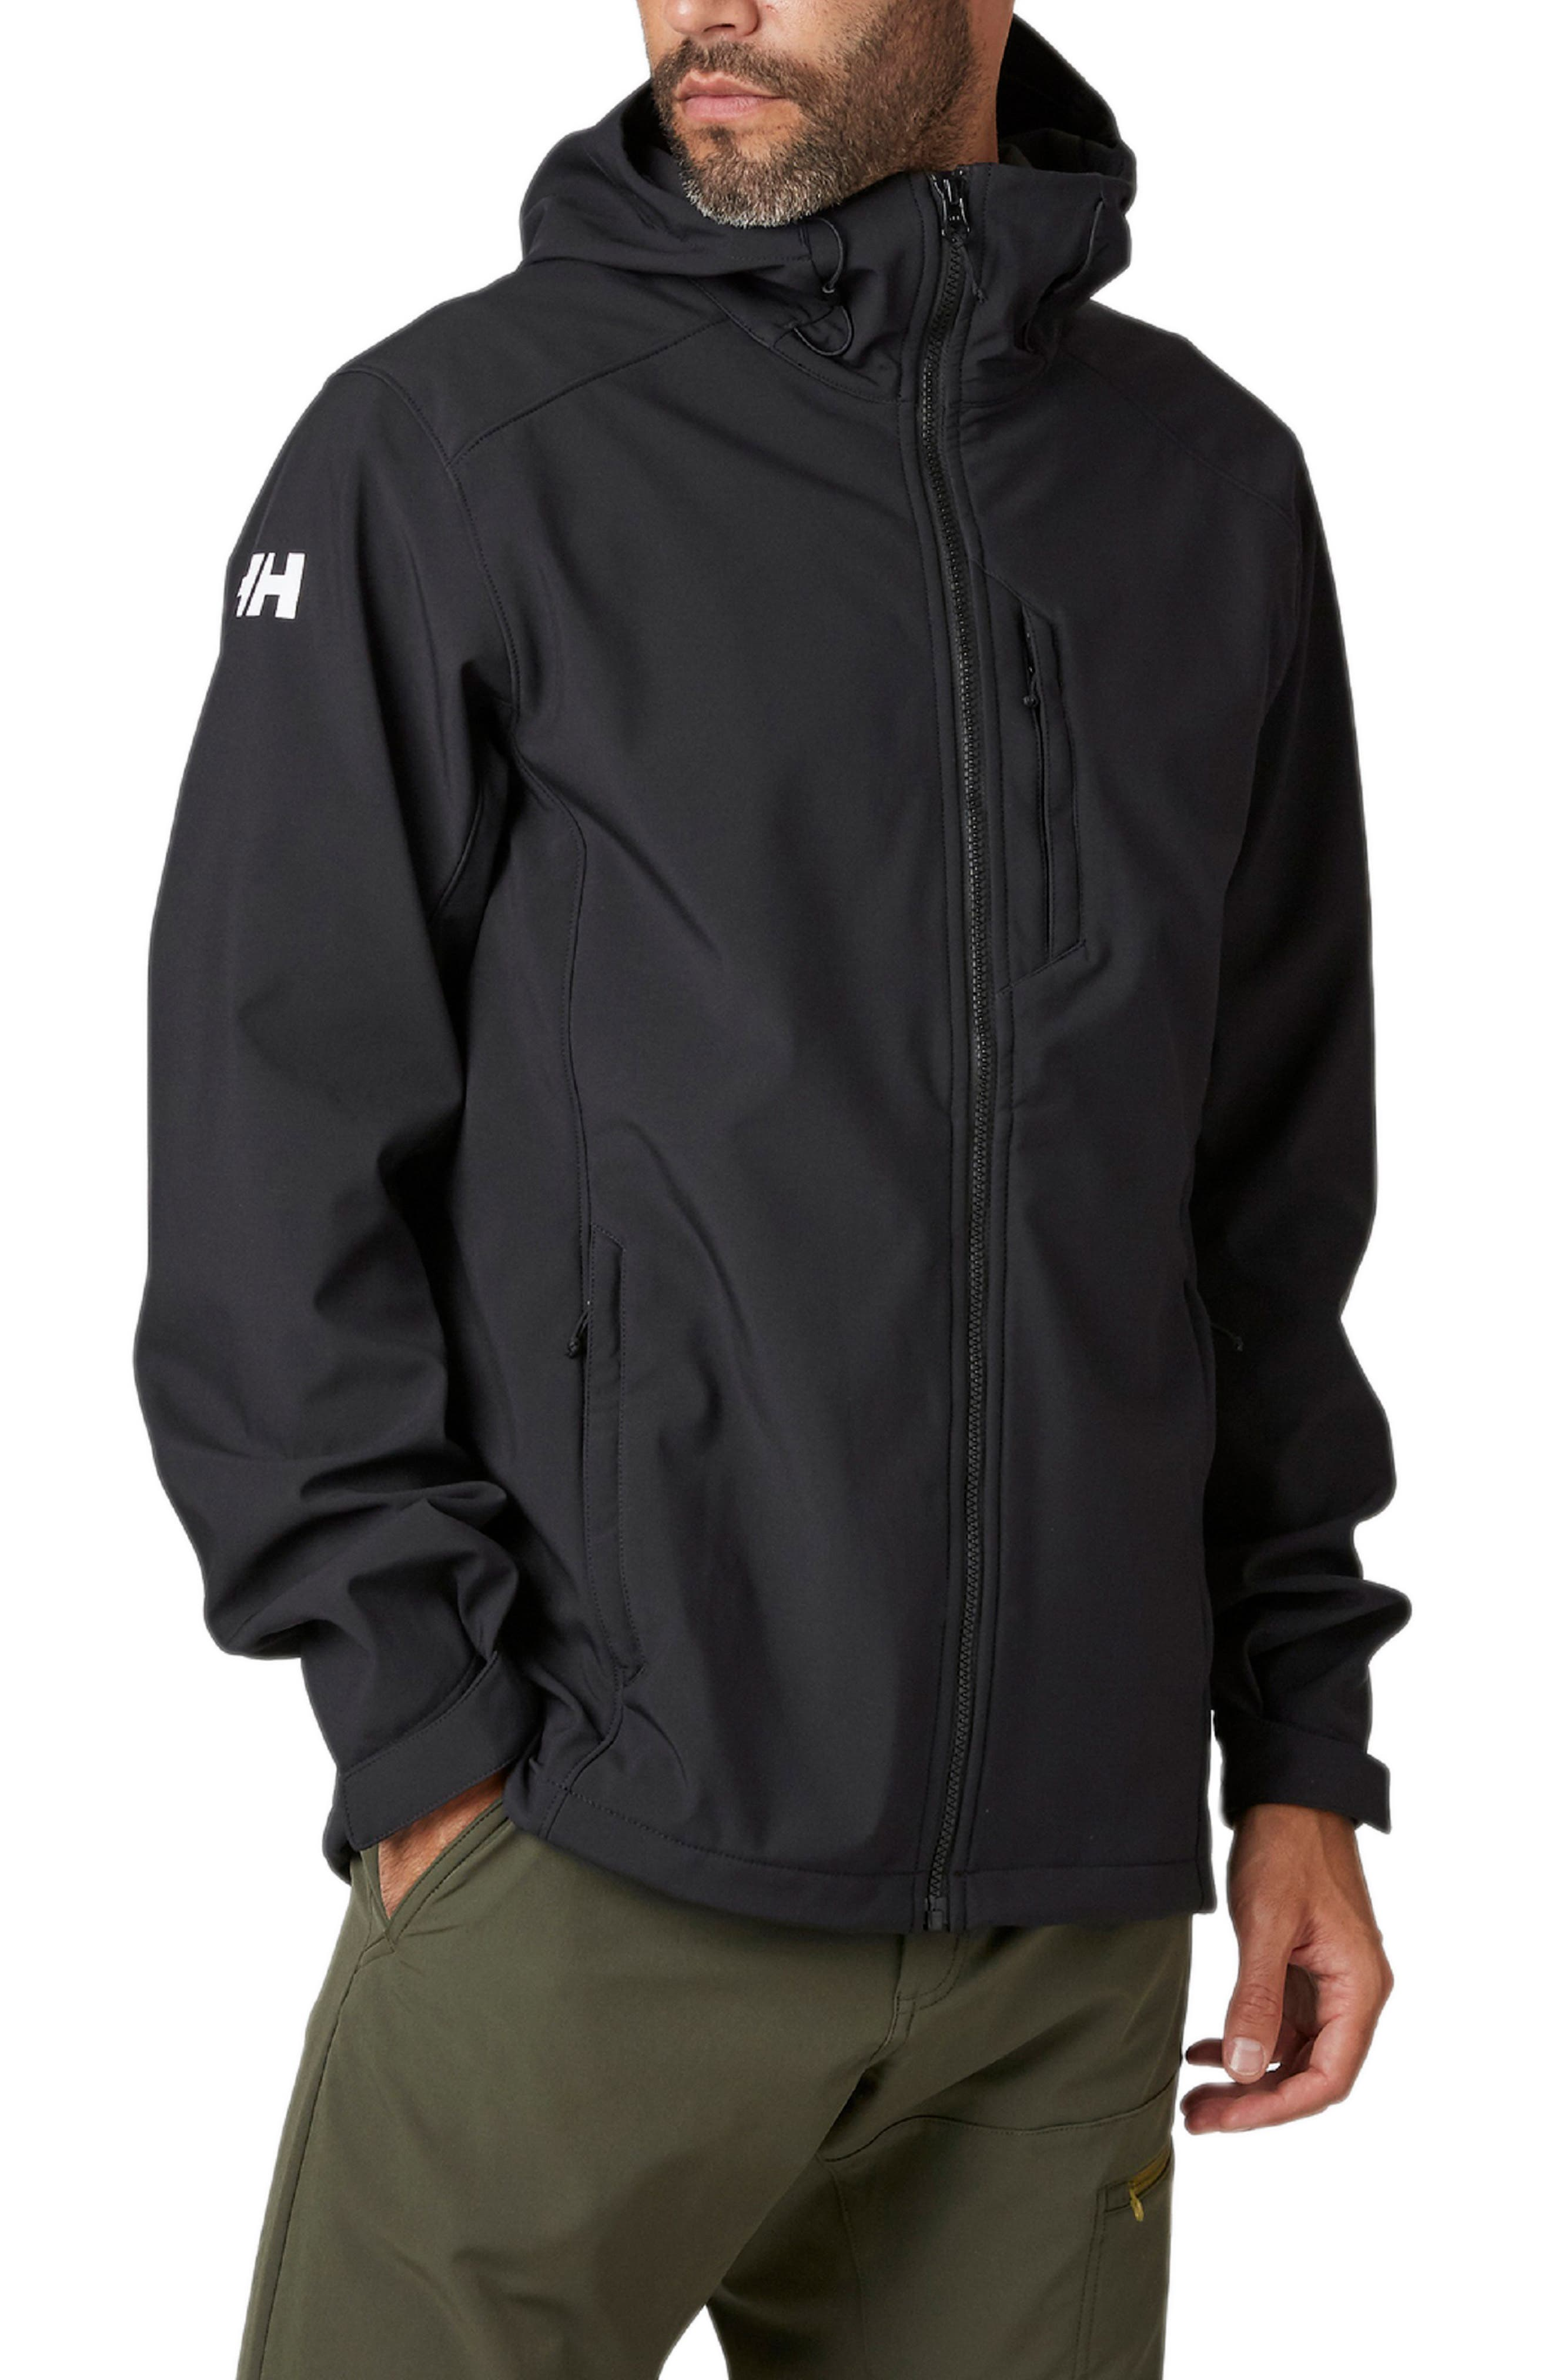 Paramount Water Resistant Hooded Softshell Jacket